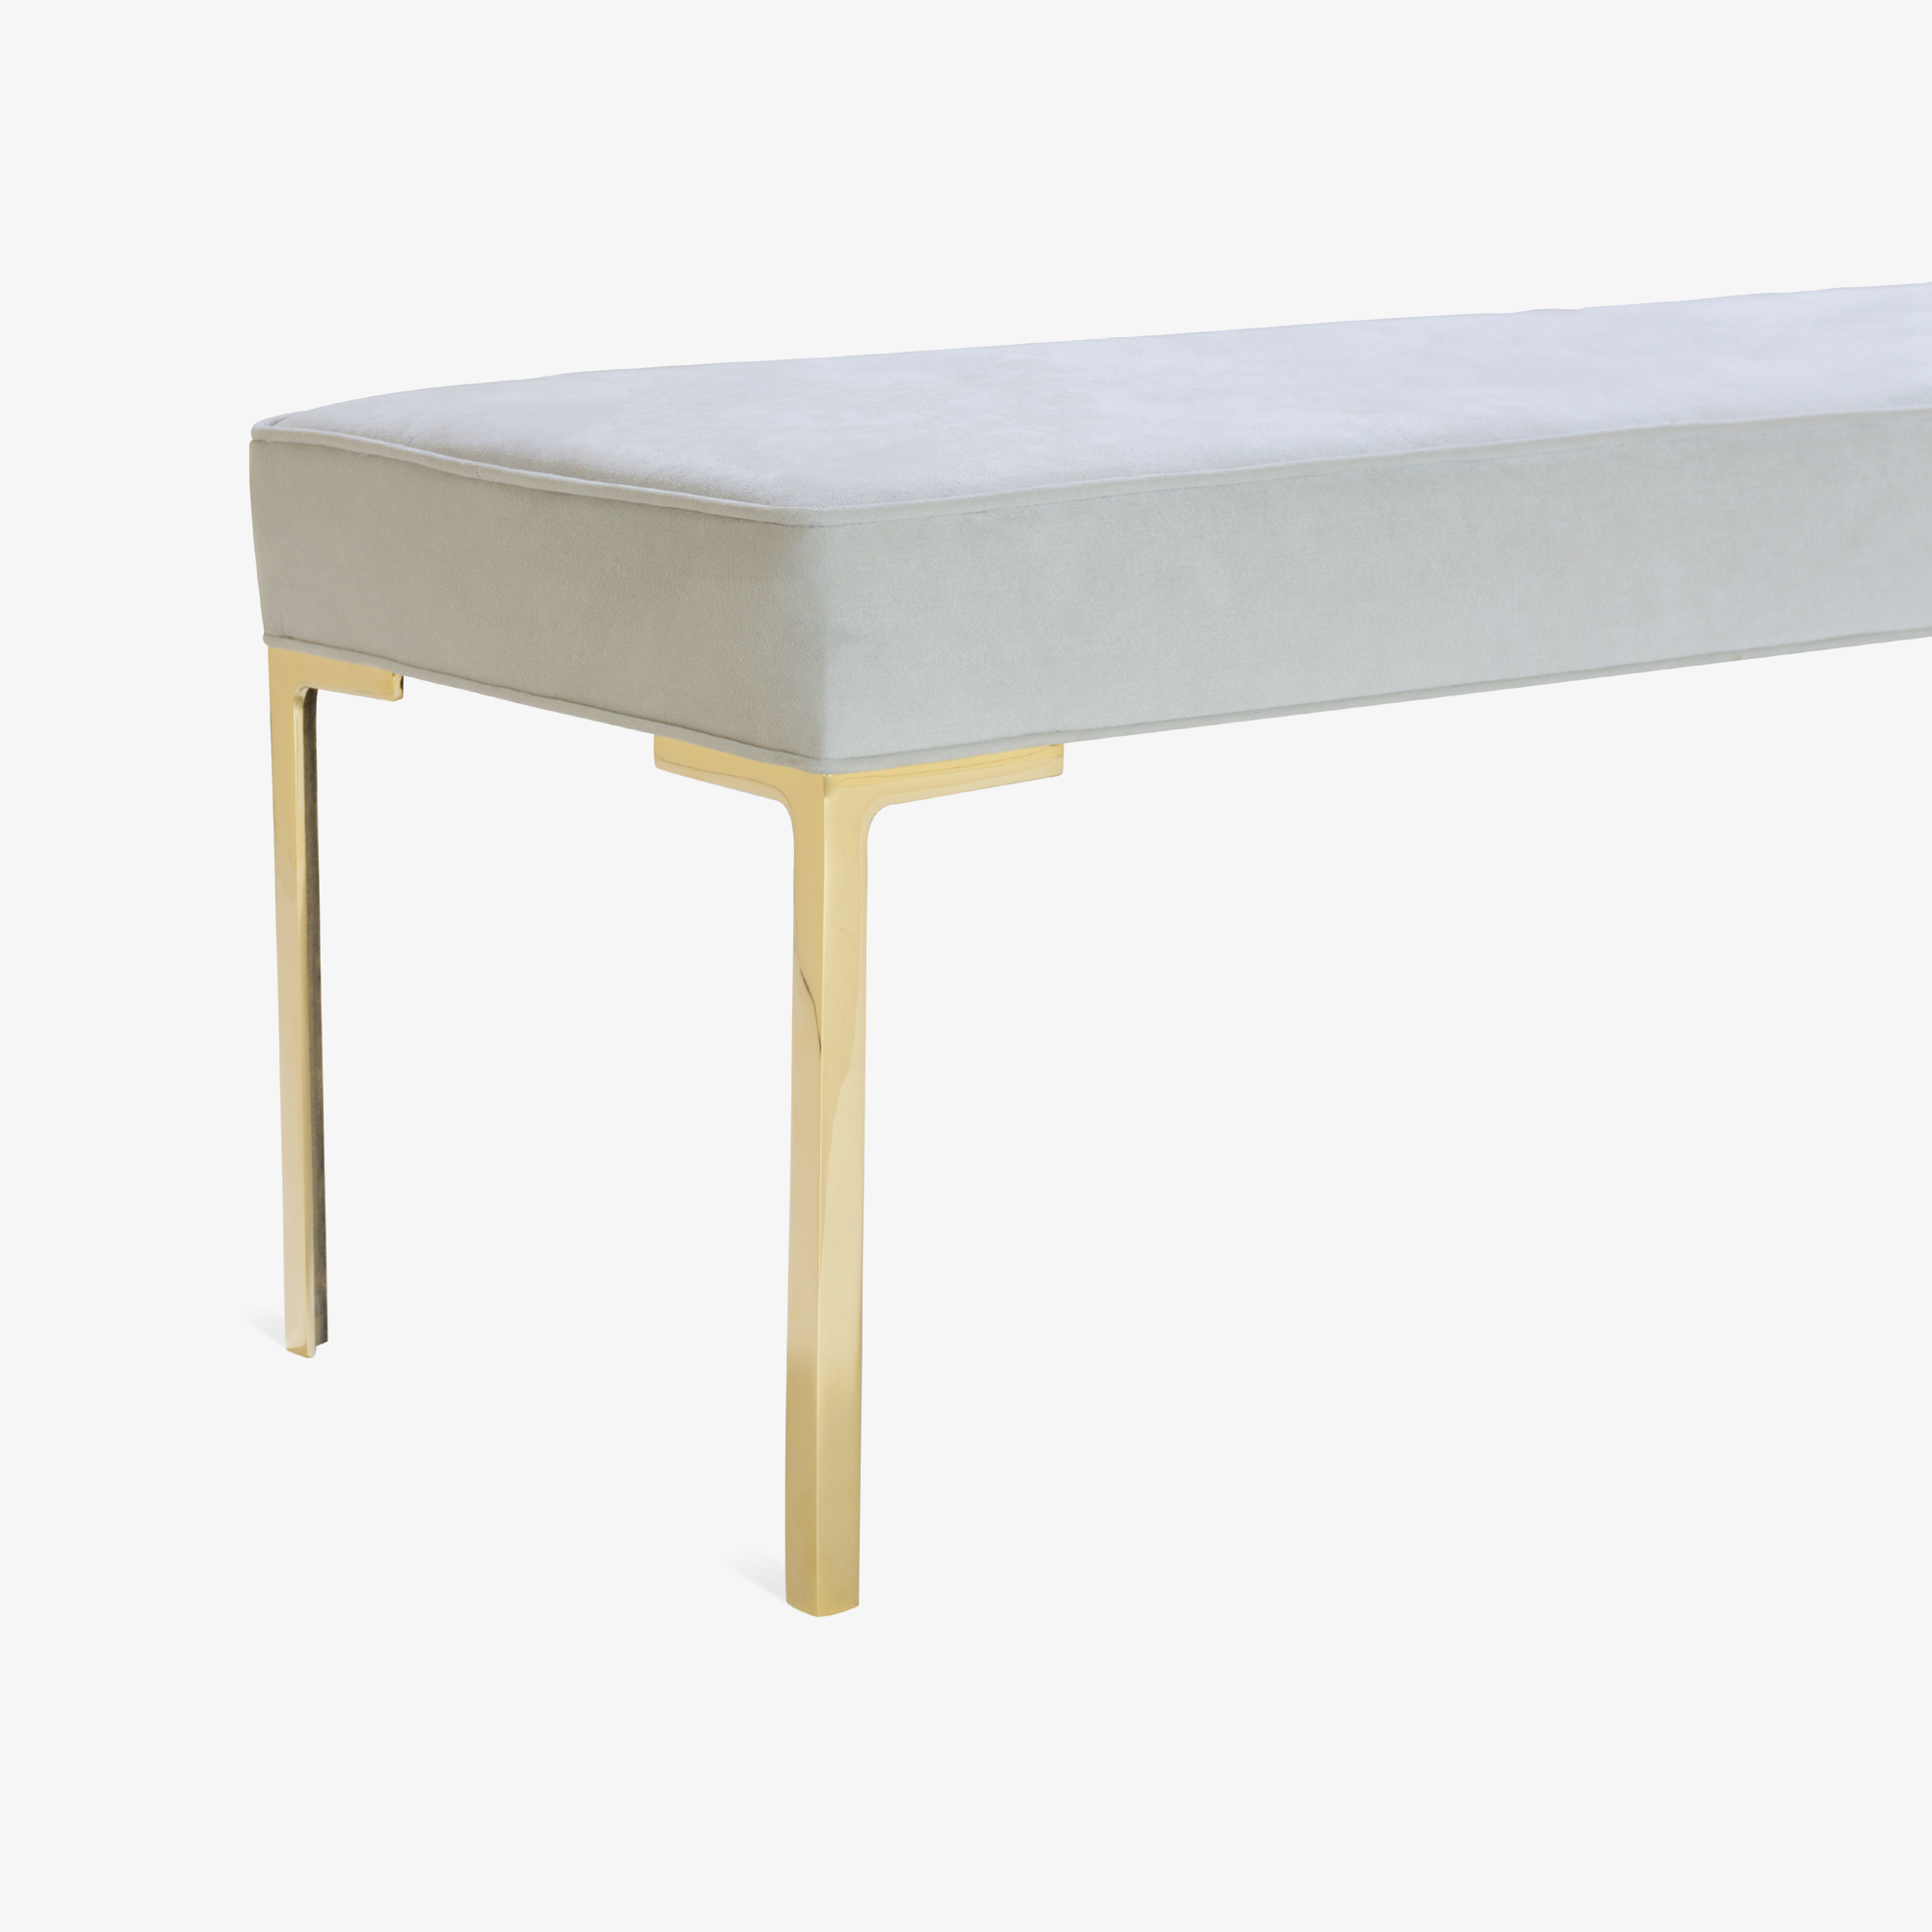 Astor 60%22 Brass Bench in Dove Luxe Suede4.png